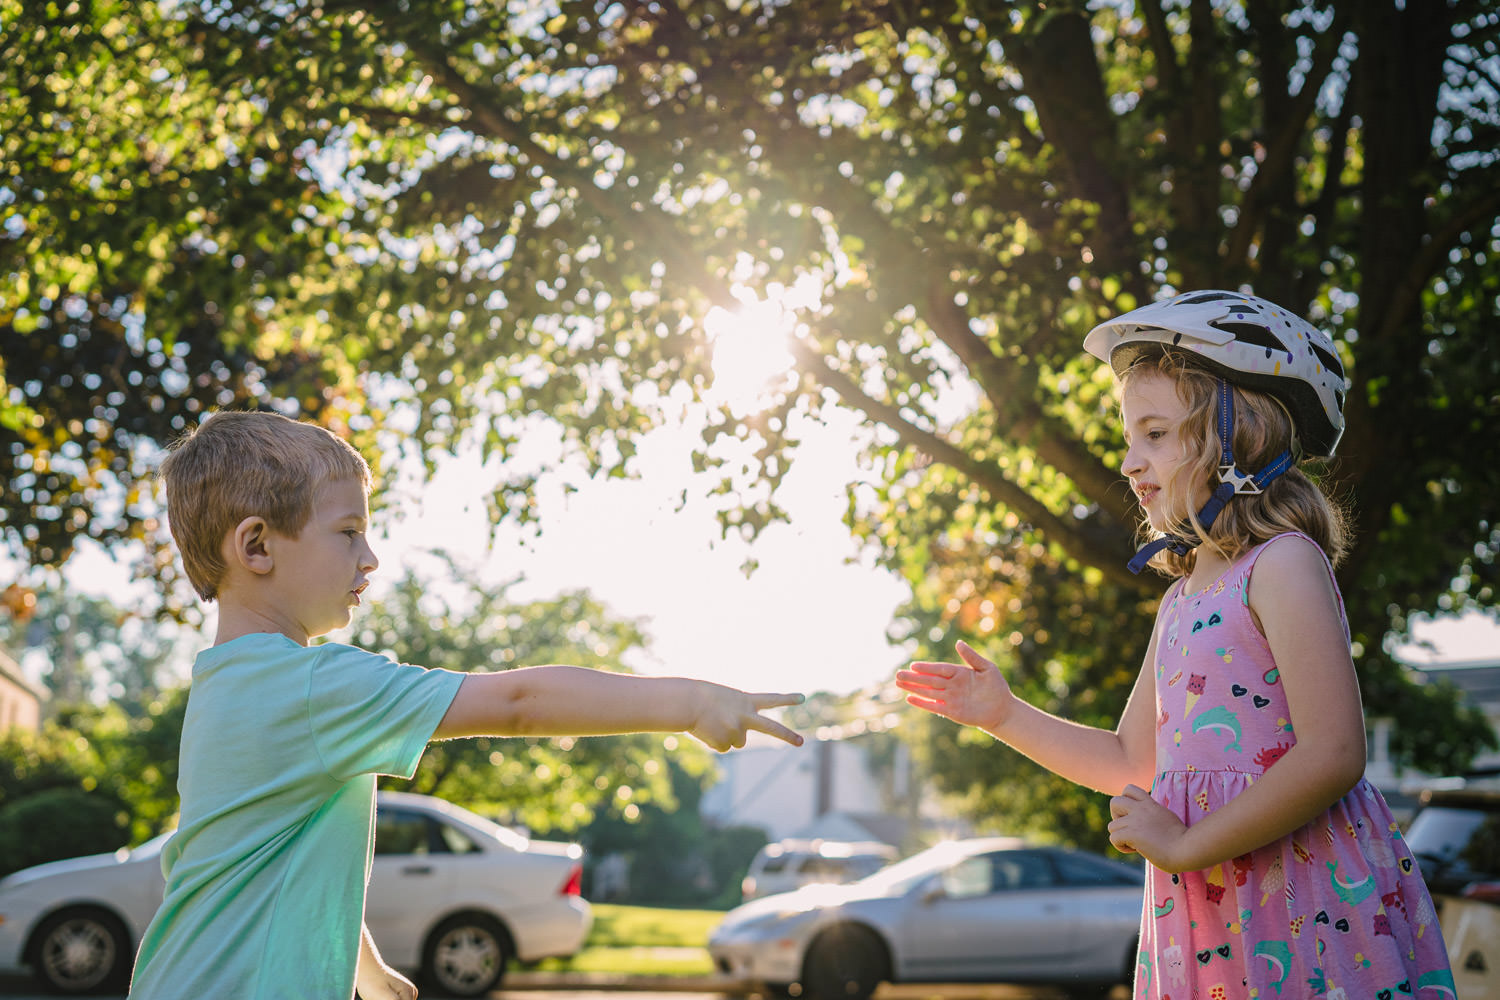 Siblings play rock, paper, scissors in their front yard.